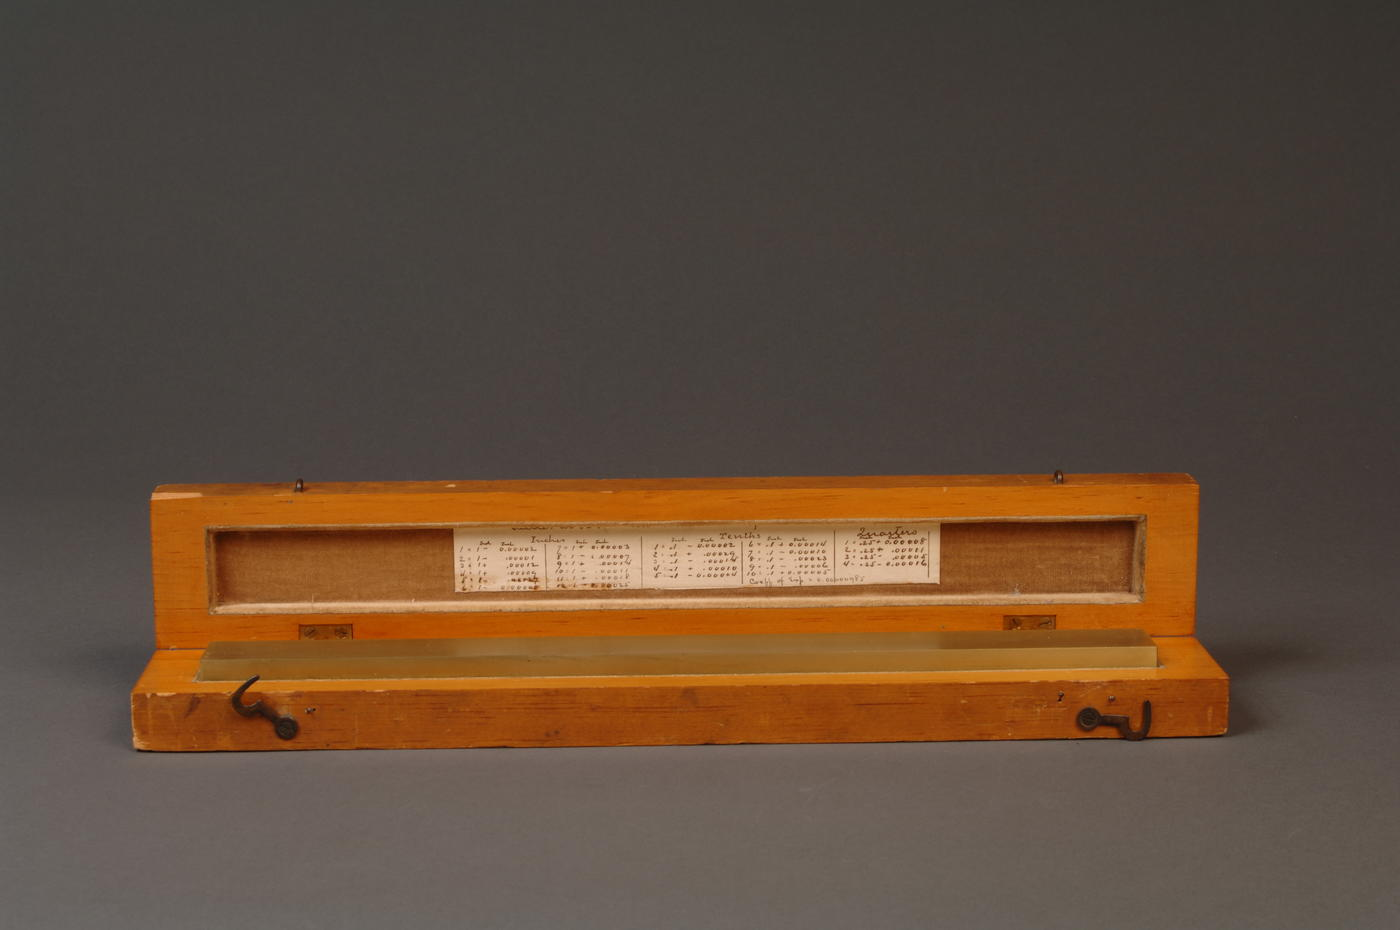 Brass line scale sitting in wooden box with lid open, calibration writing visible on side of lid.